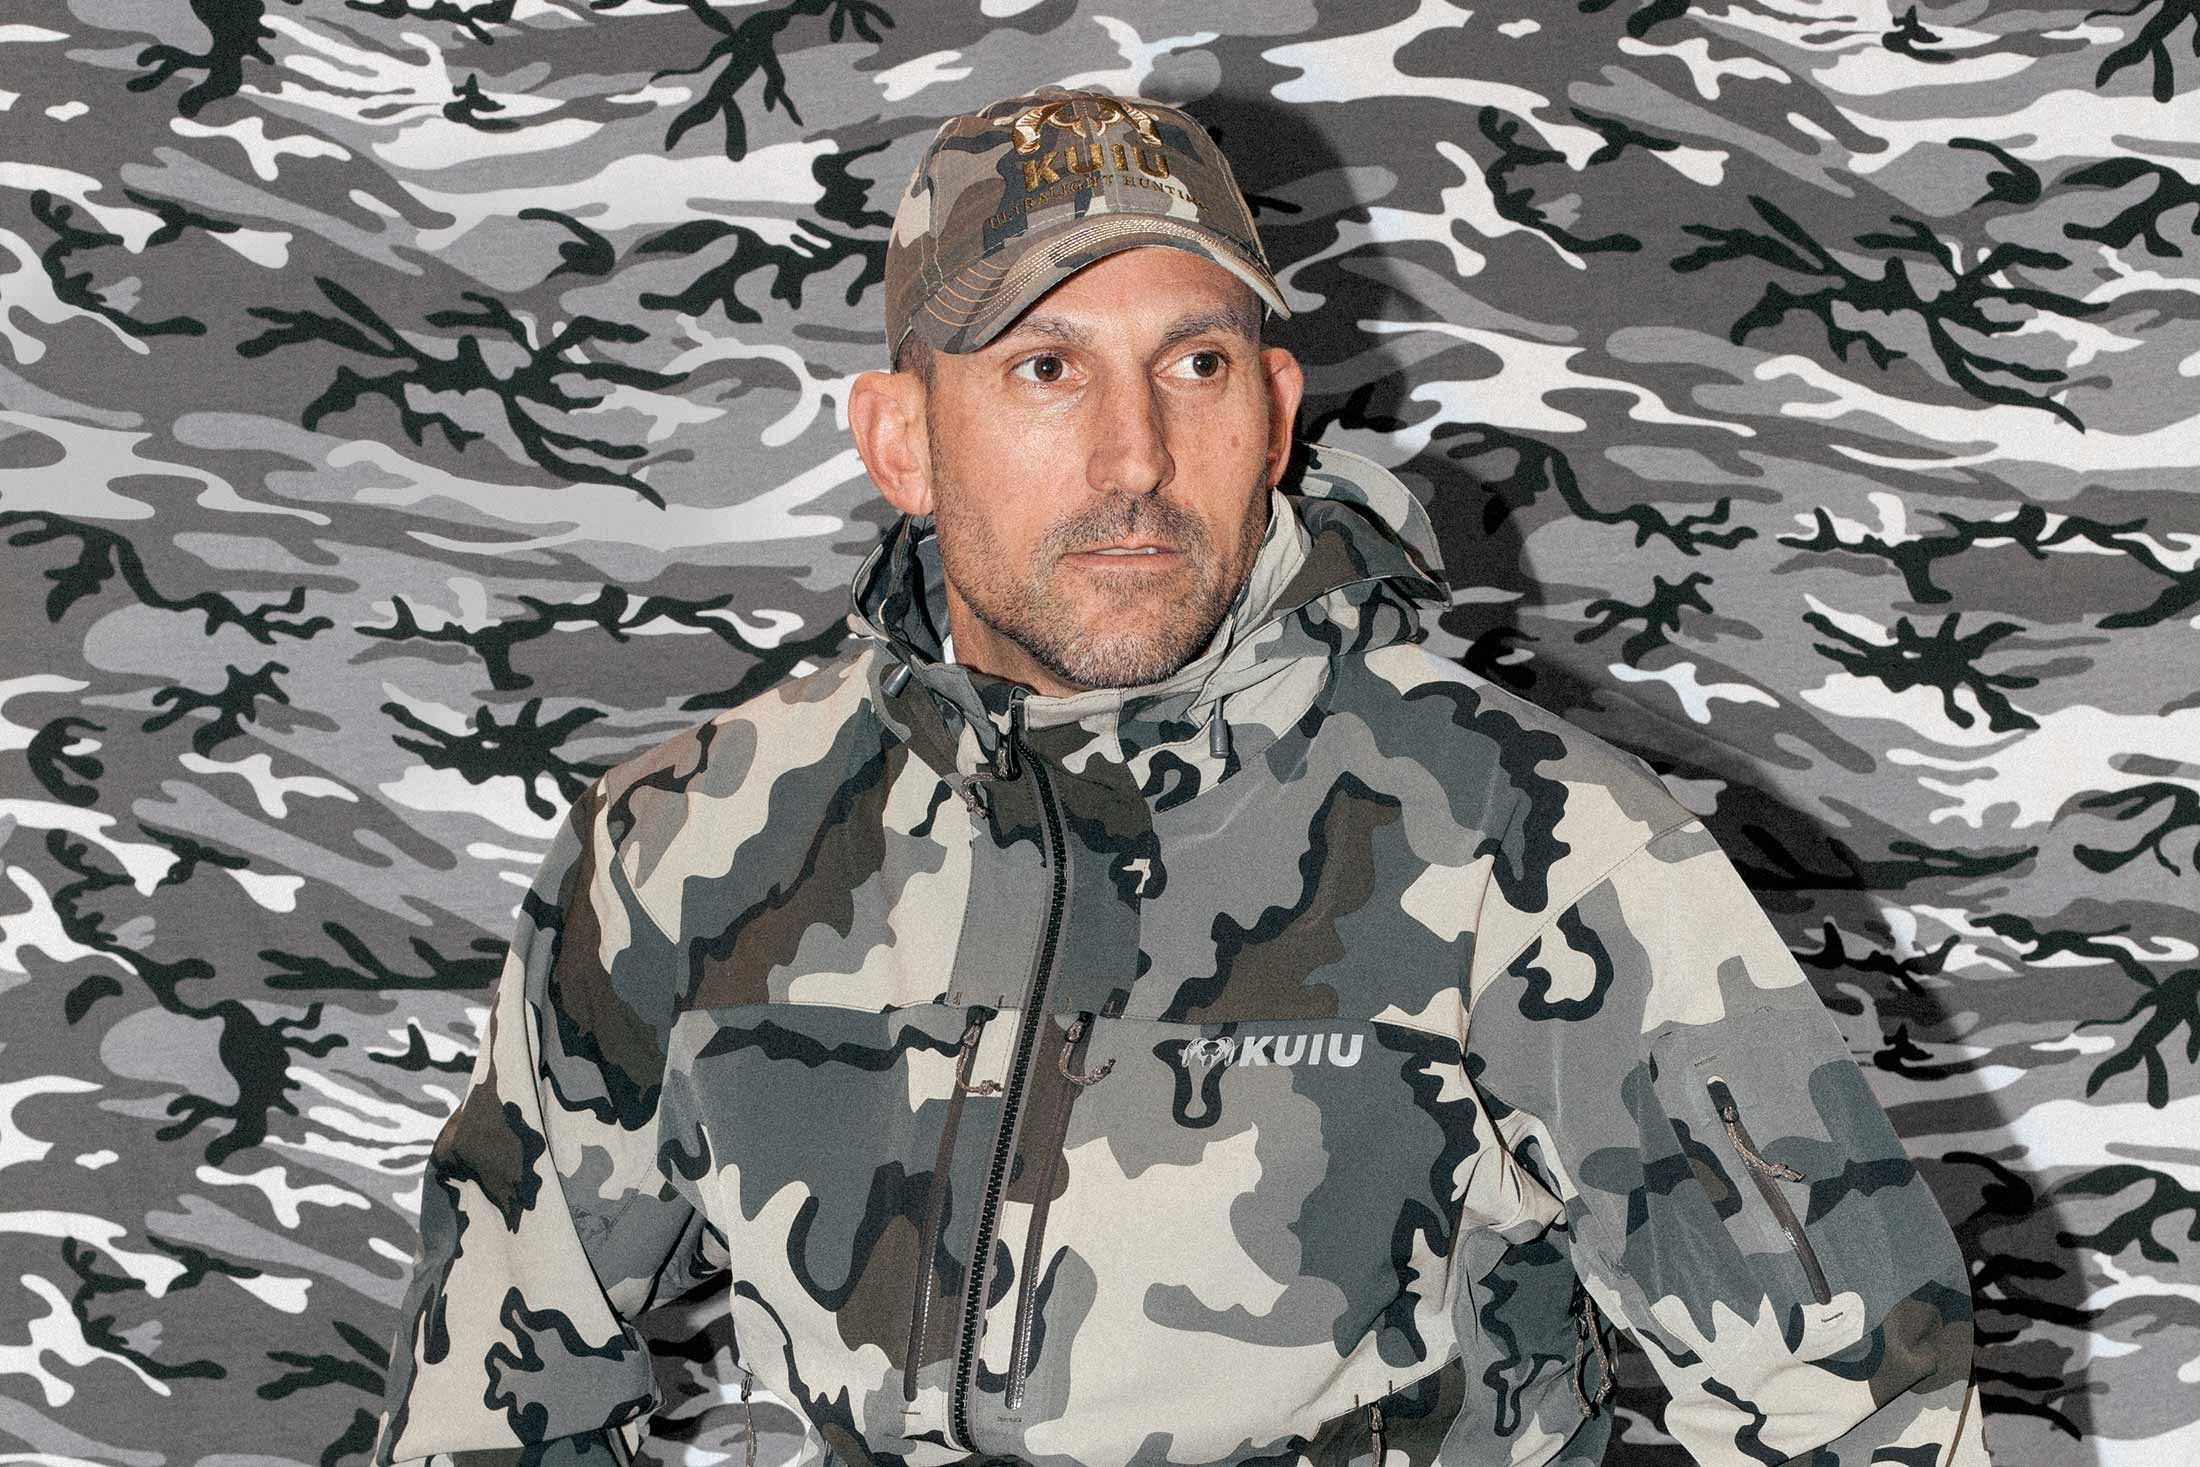 Jason Hairston, Kuiu's founder.  I'm not a hunter, but this stuff's pretty cool.